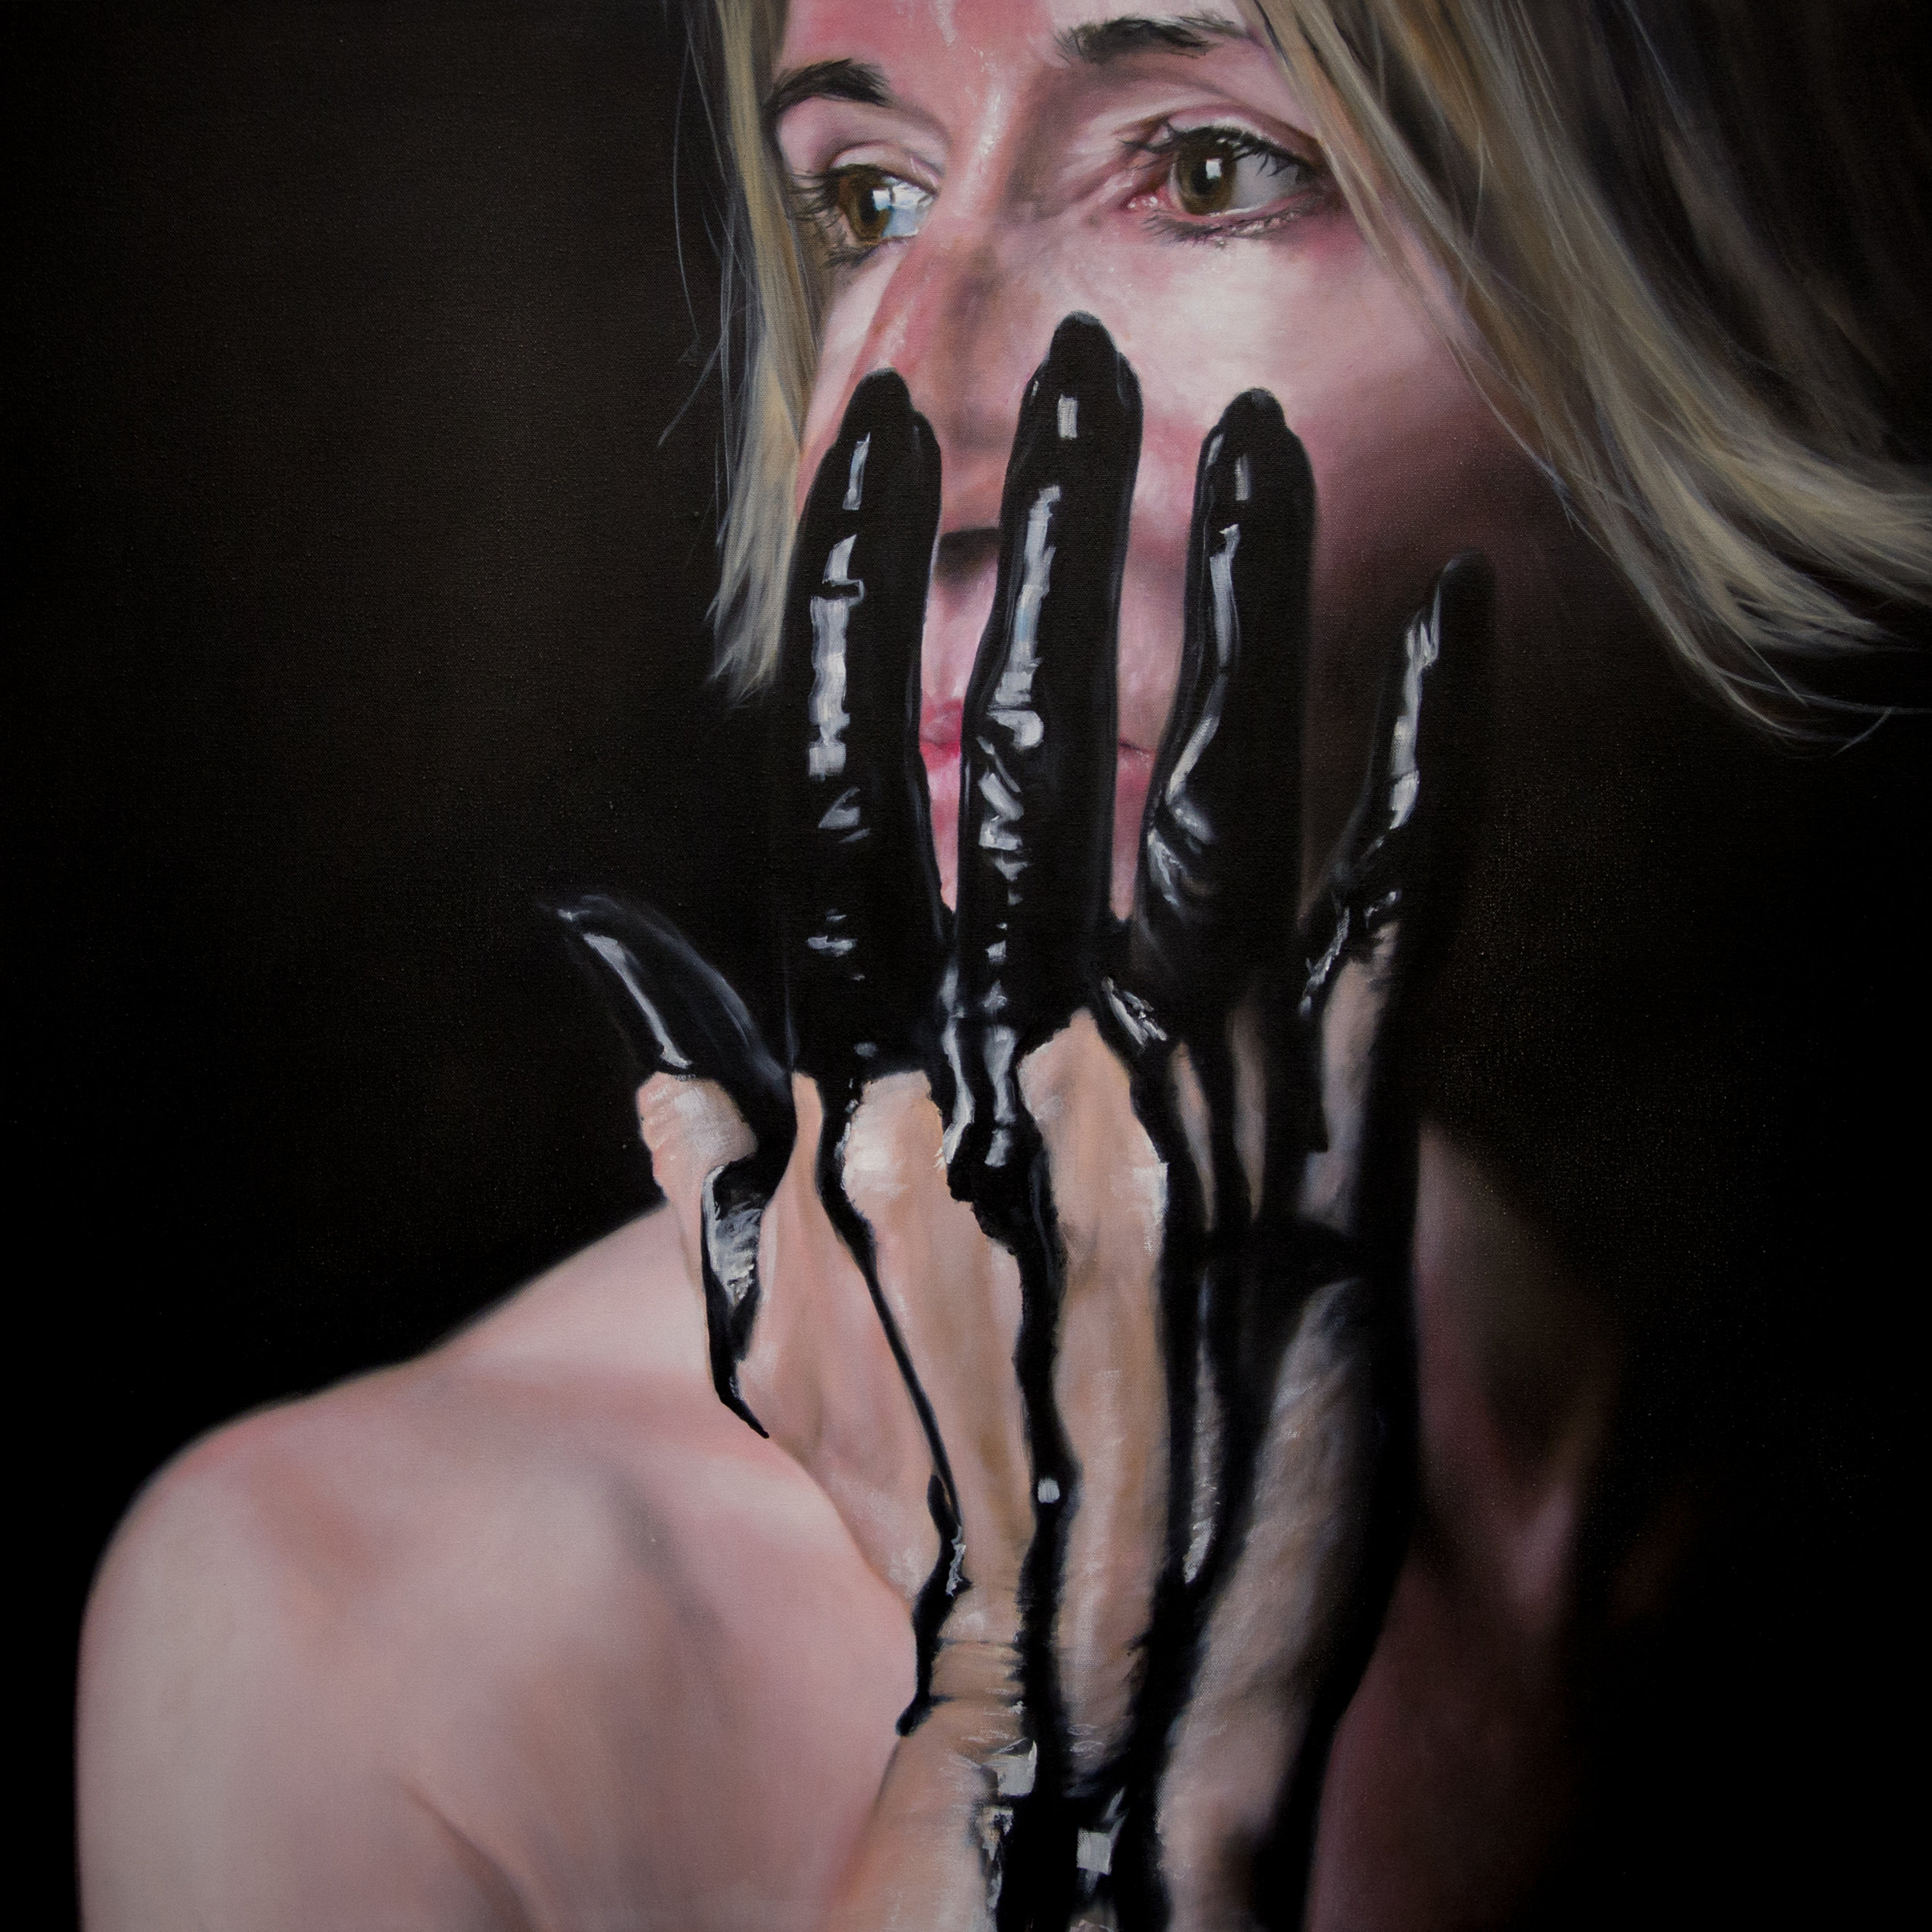 Black Paint Play Commission. 90x90cm, Oil on Canvas (SOLD)